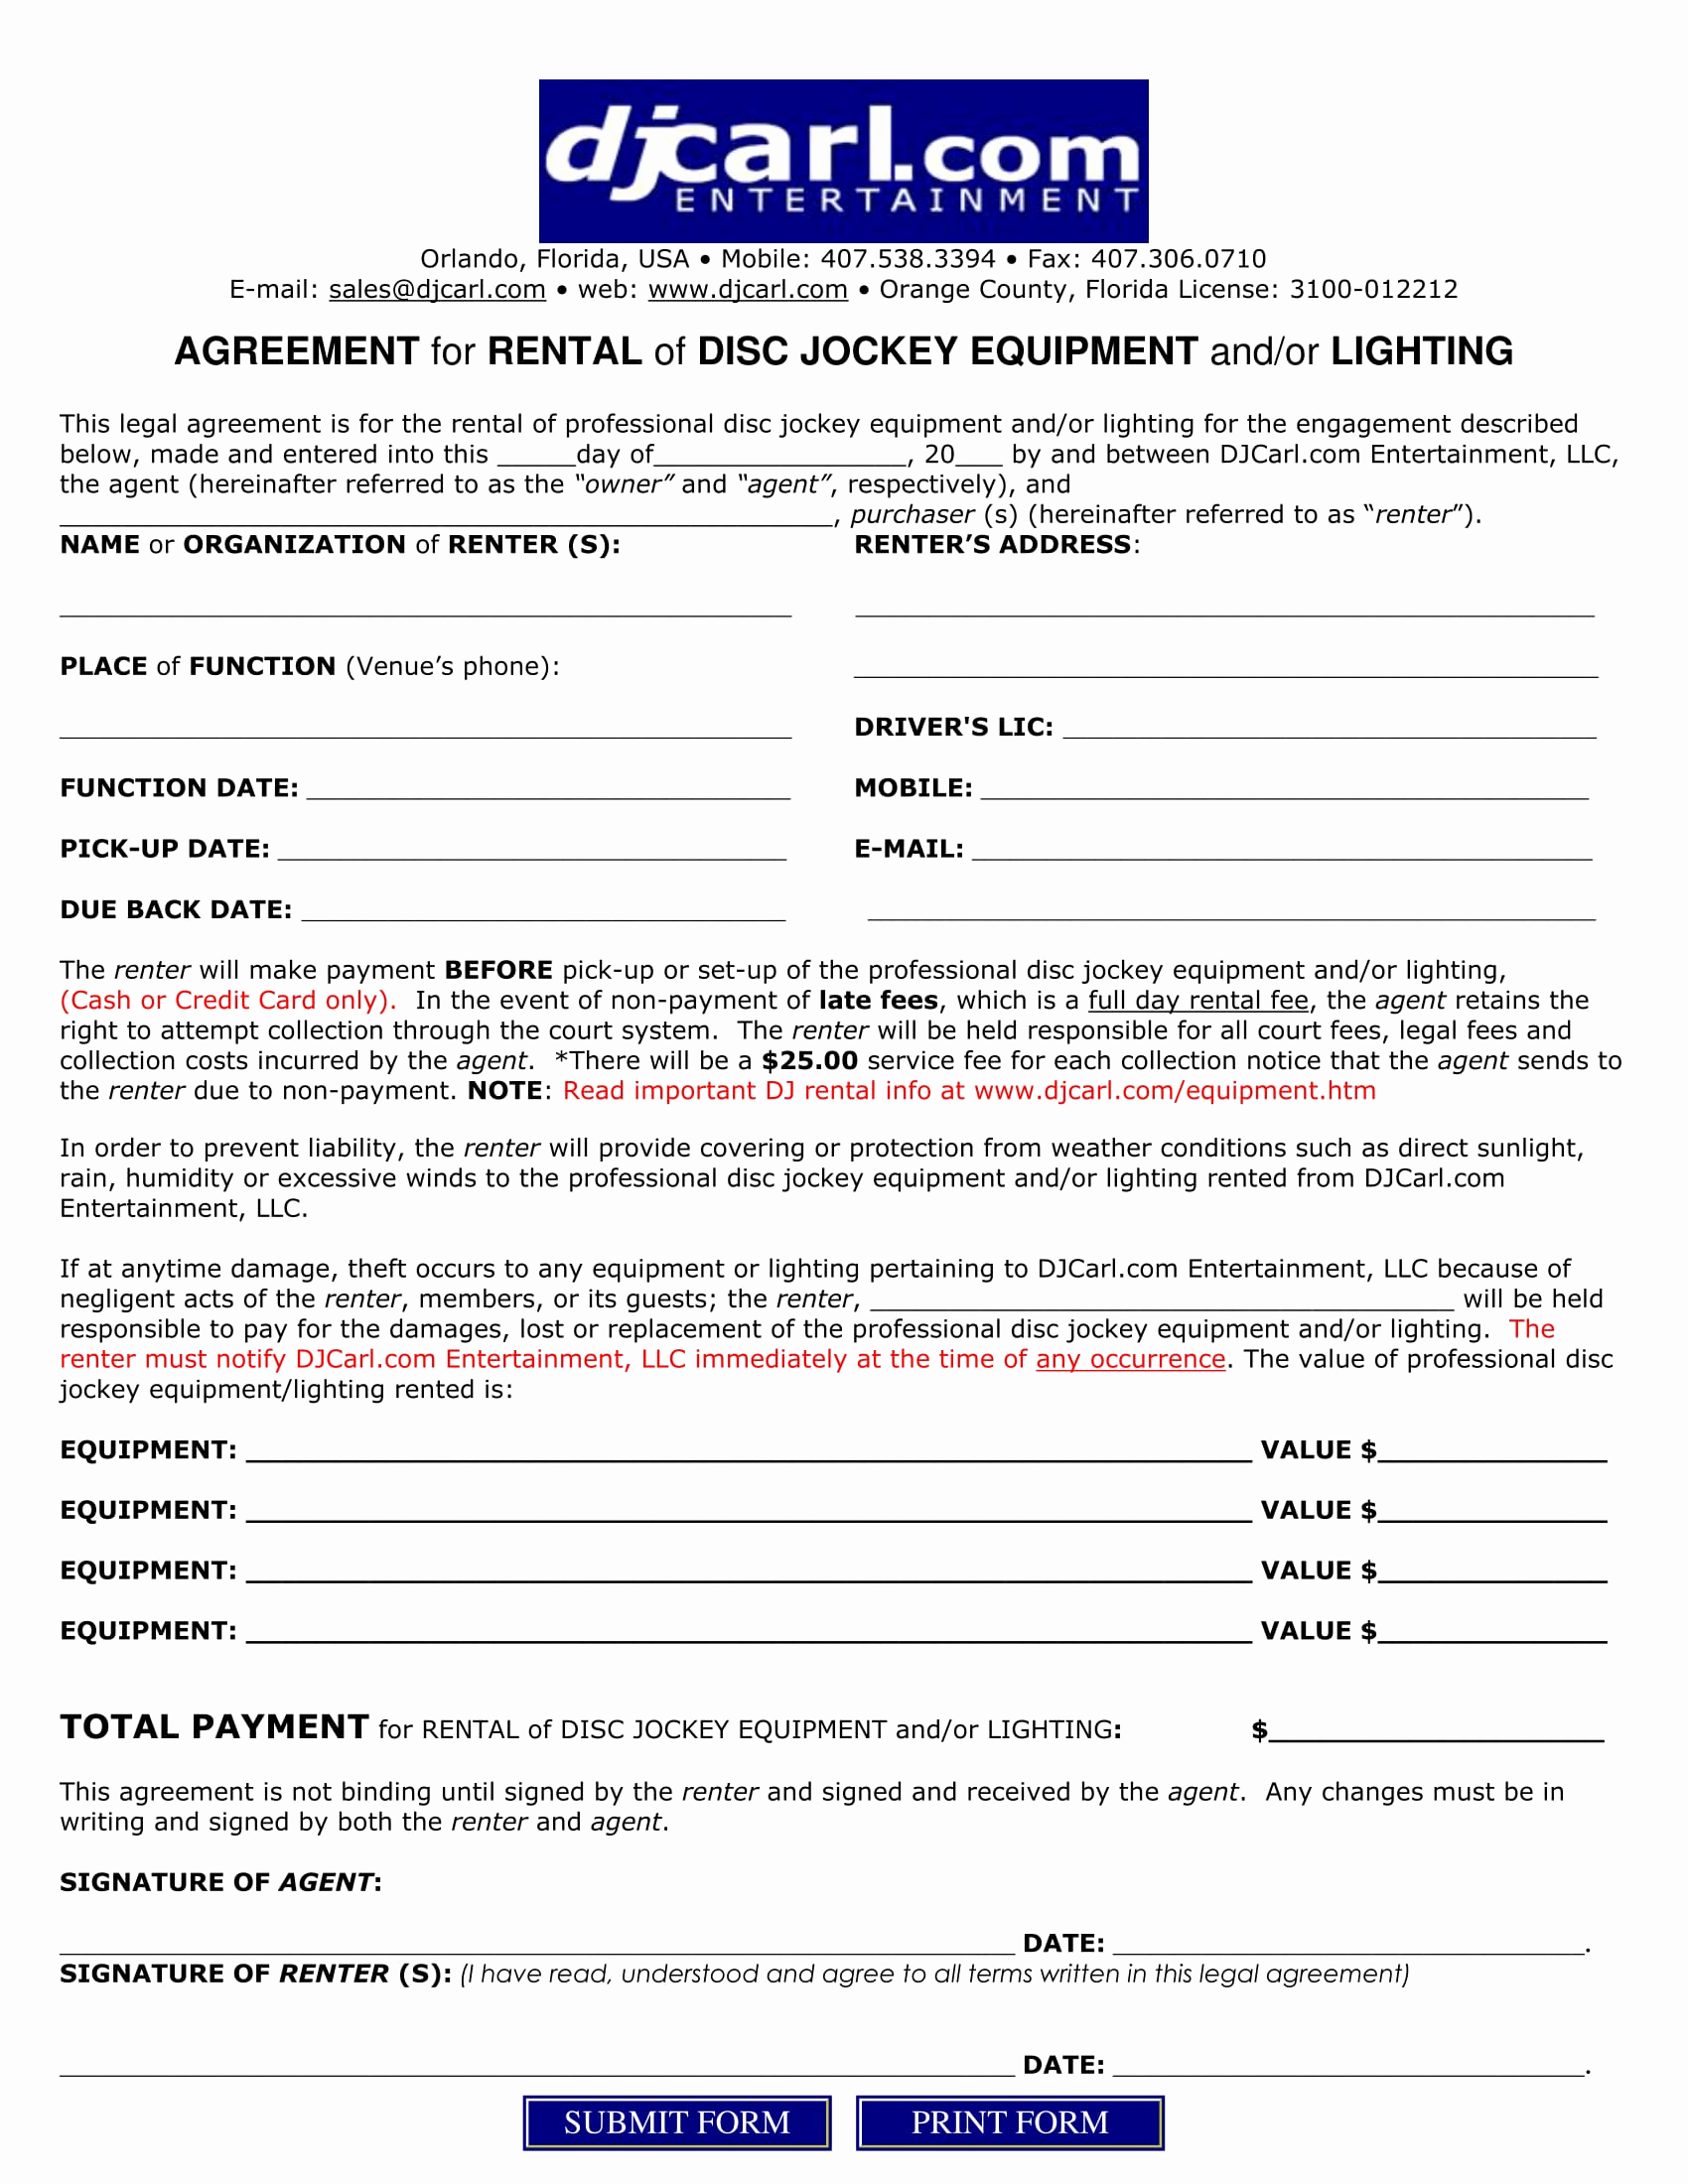 Disc Jockey Contracts Template Luxury 5 Dj Contract forms Dj Agreement Equipment Rental